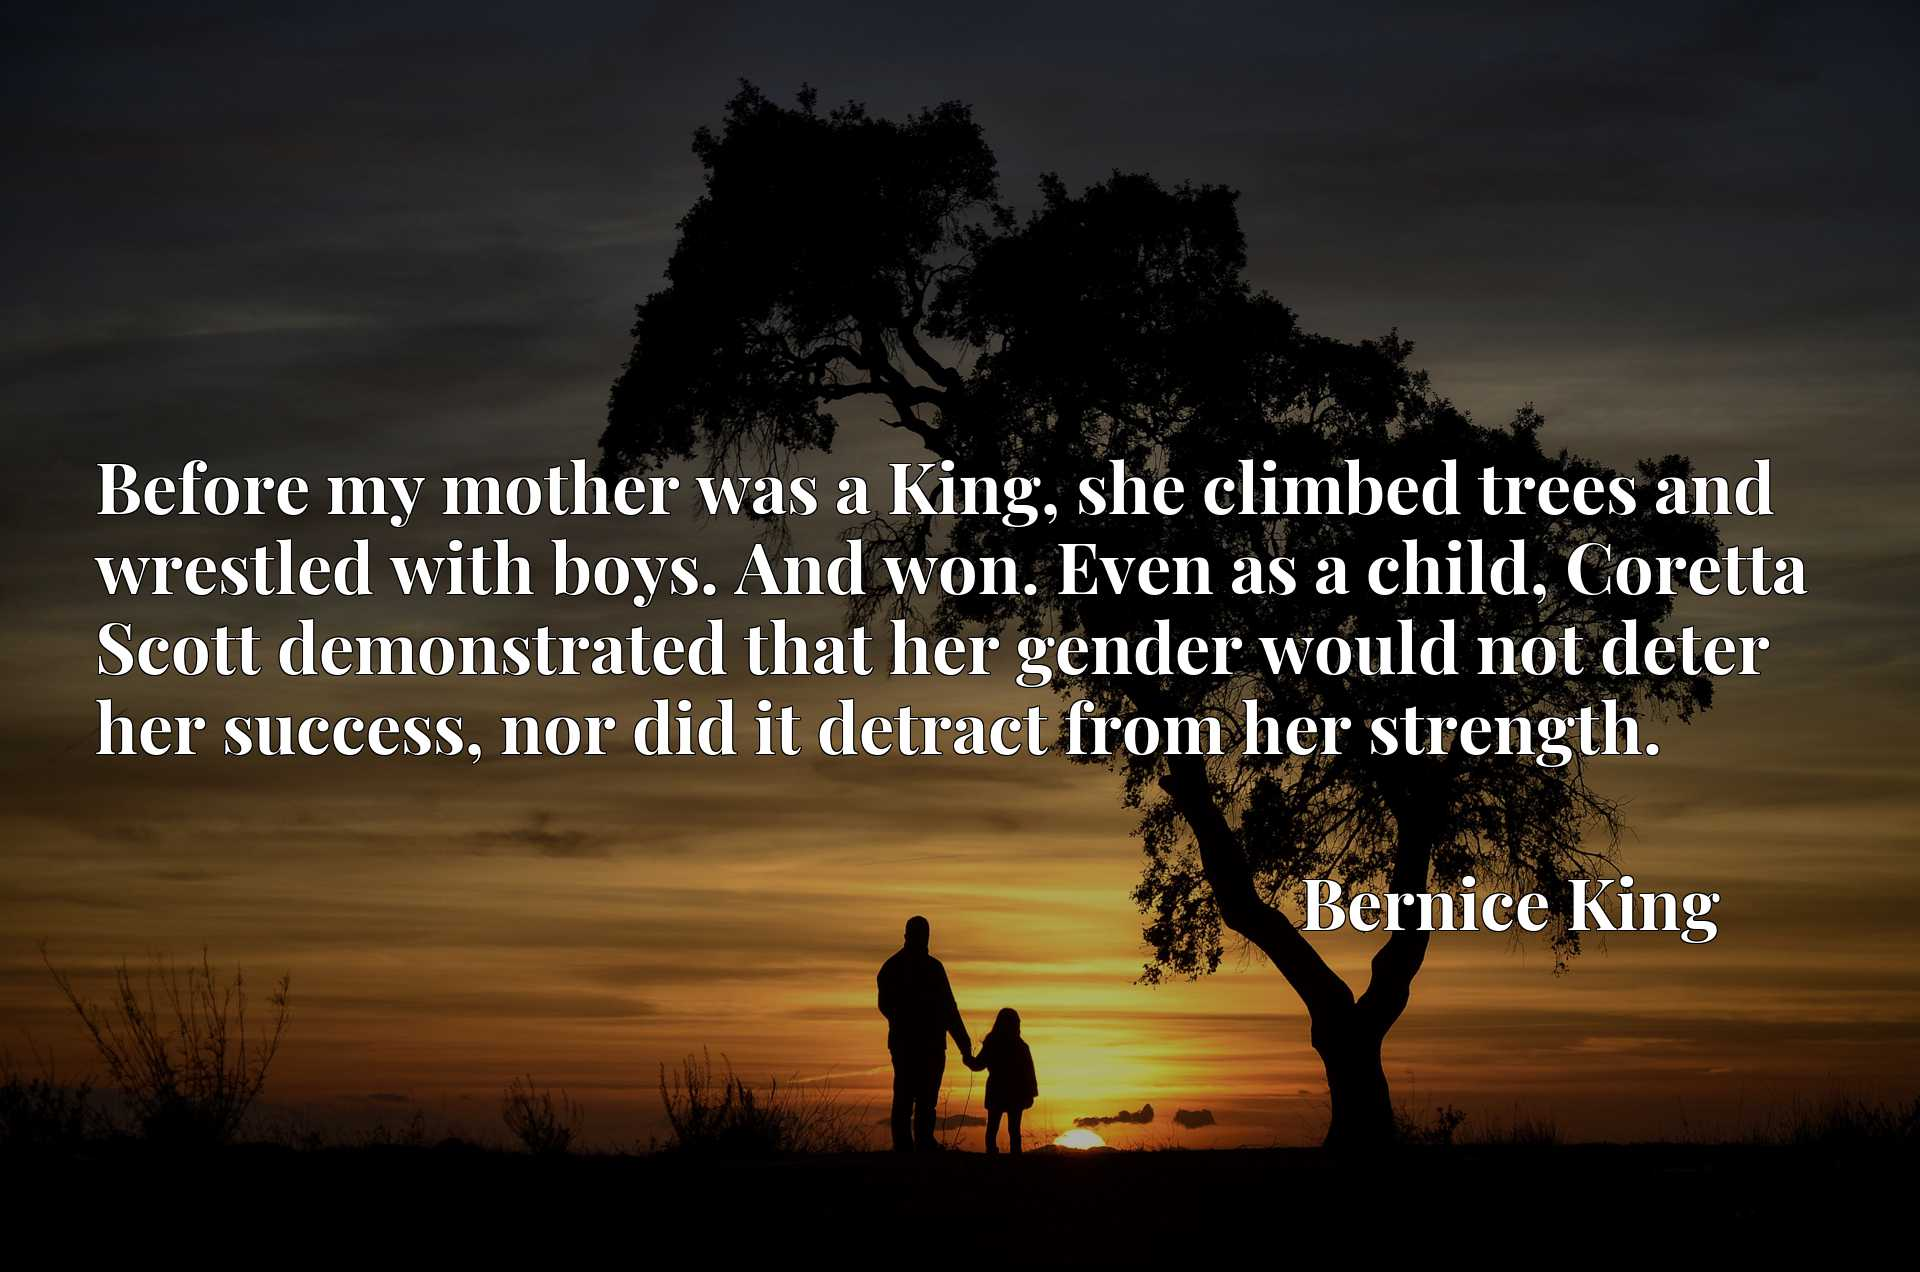 Before my mother was a King, she climbed trees and wrestled with boys. And won. Even as a child, Coretta Scott demonstrated that her gender would not deter her success, nor did it detract from her strength.